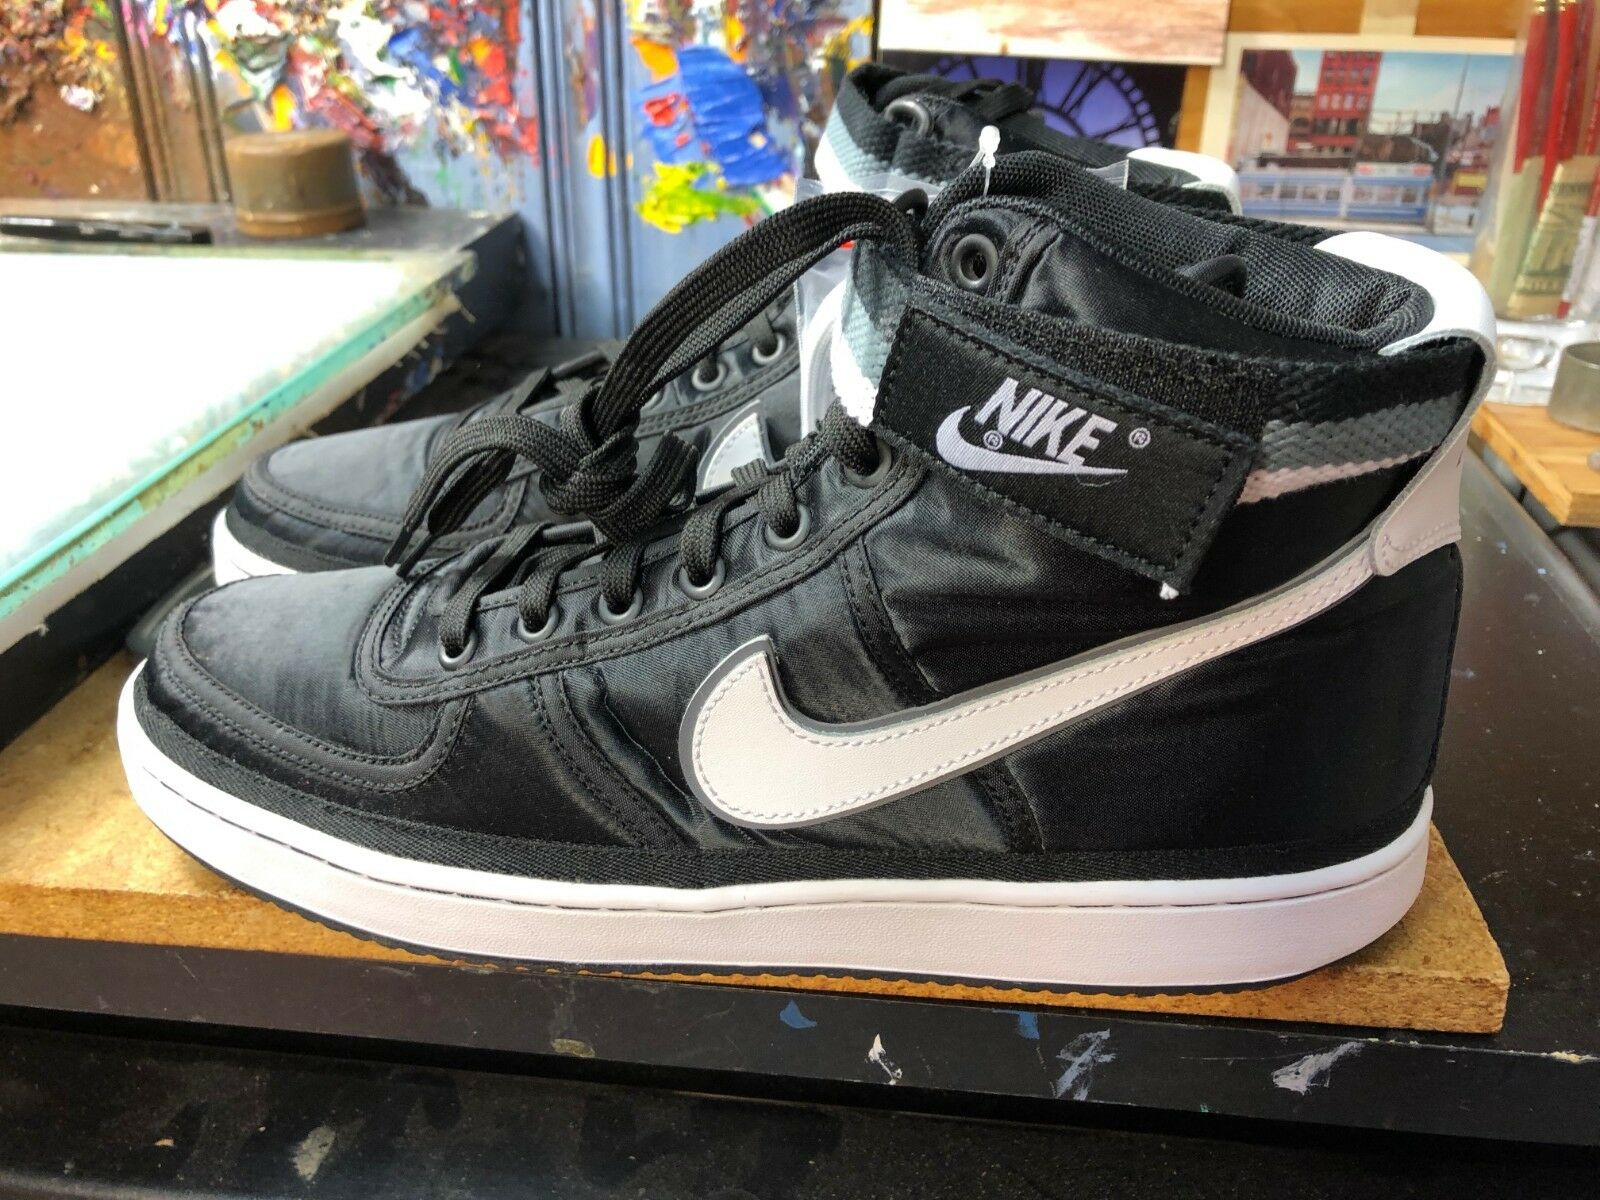 35ef5c83b06 Nike Vandal High Supreme Black White-Cool Grey Satin Size US 9.5 Men 318330  001